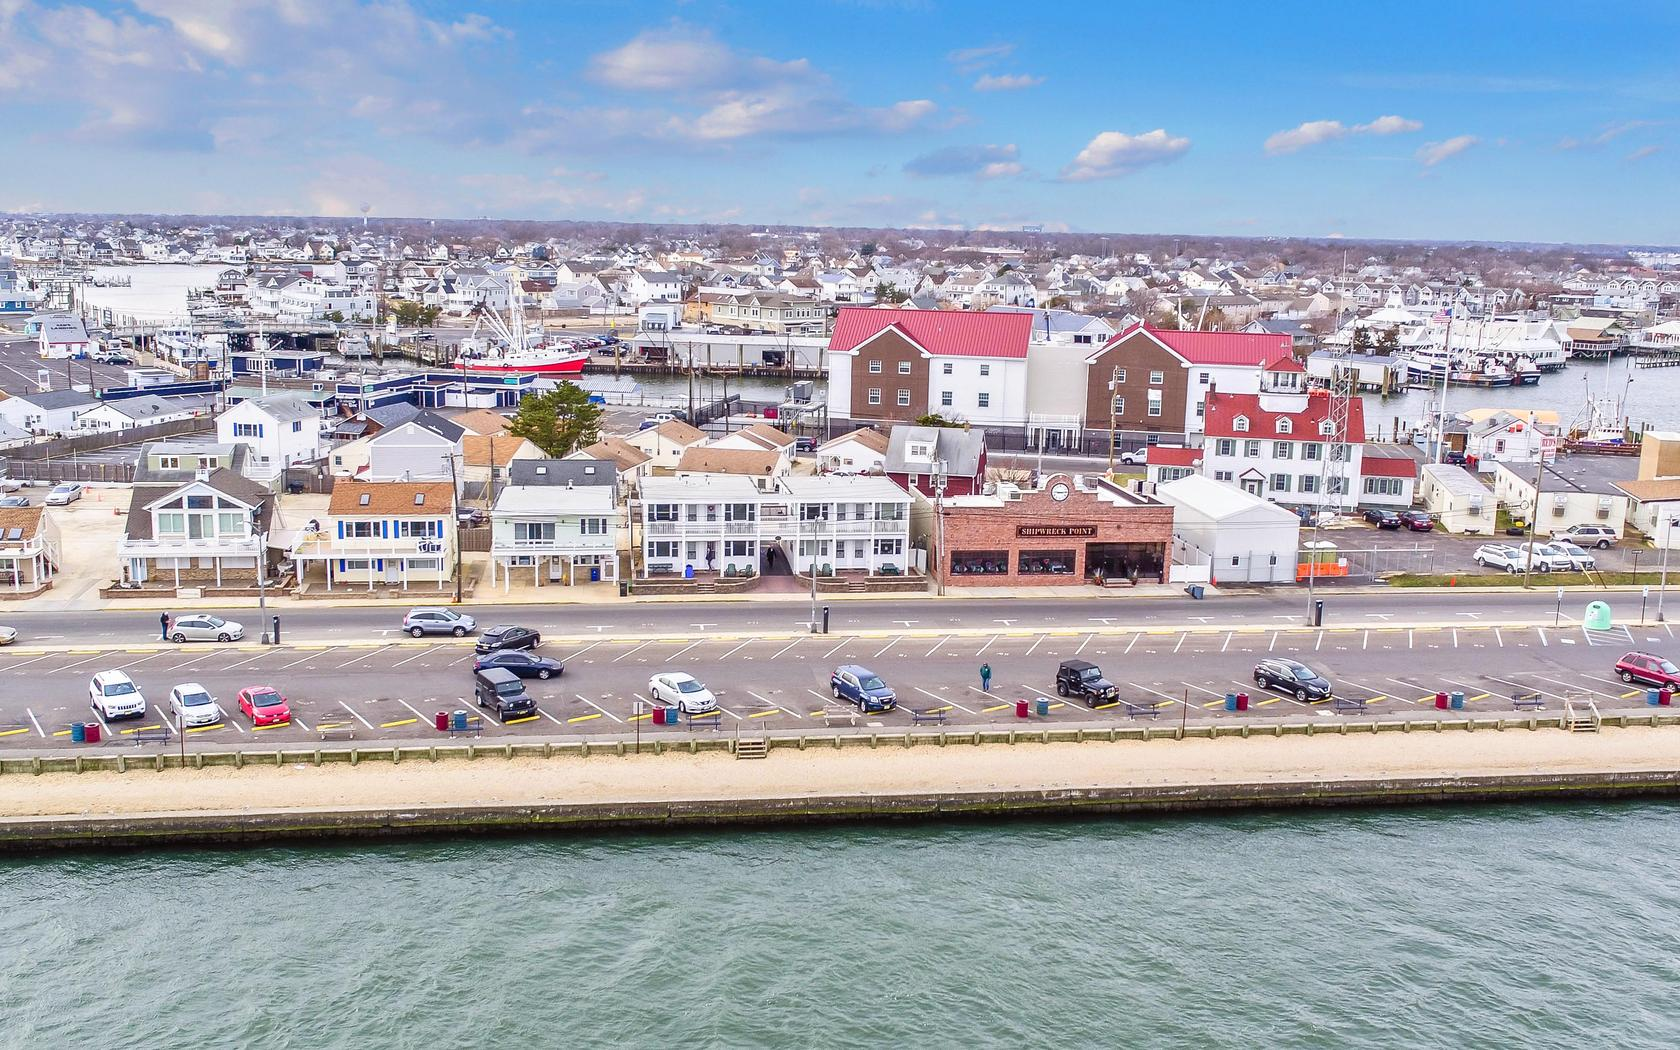 Condominium for Sale at Serene Waterfront Condo 16-18 Inlet Dr 7 Point Pleasant Beach, New Jersey 08742 United States